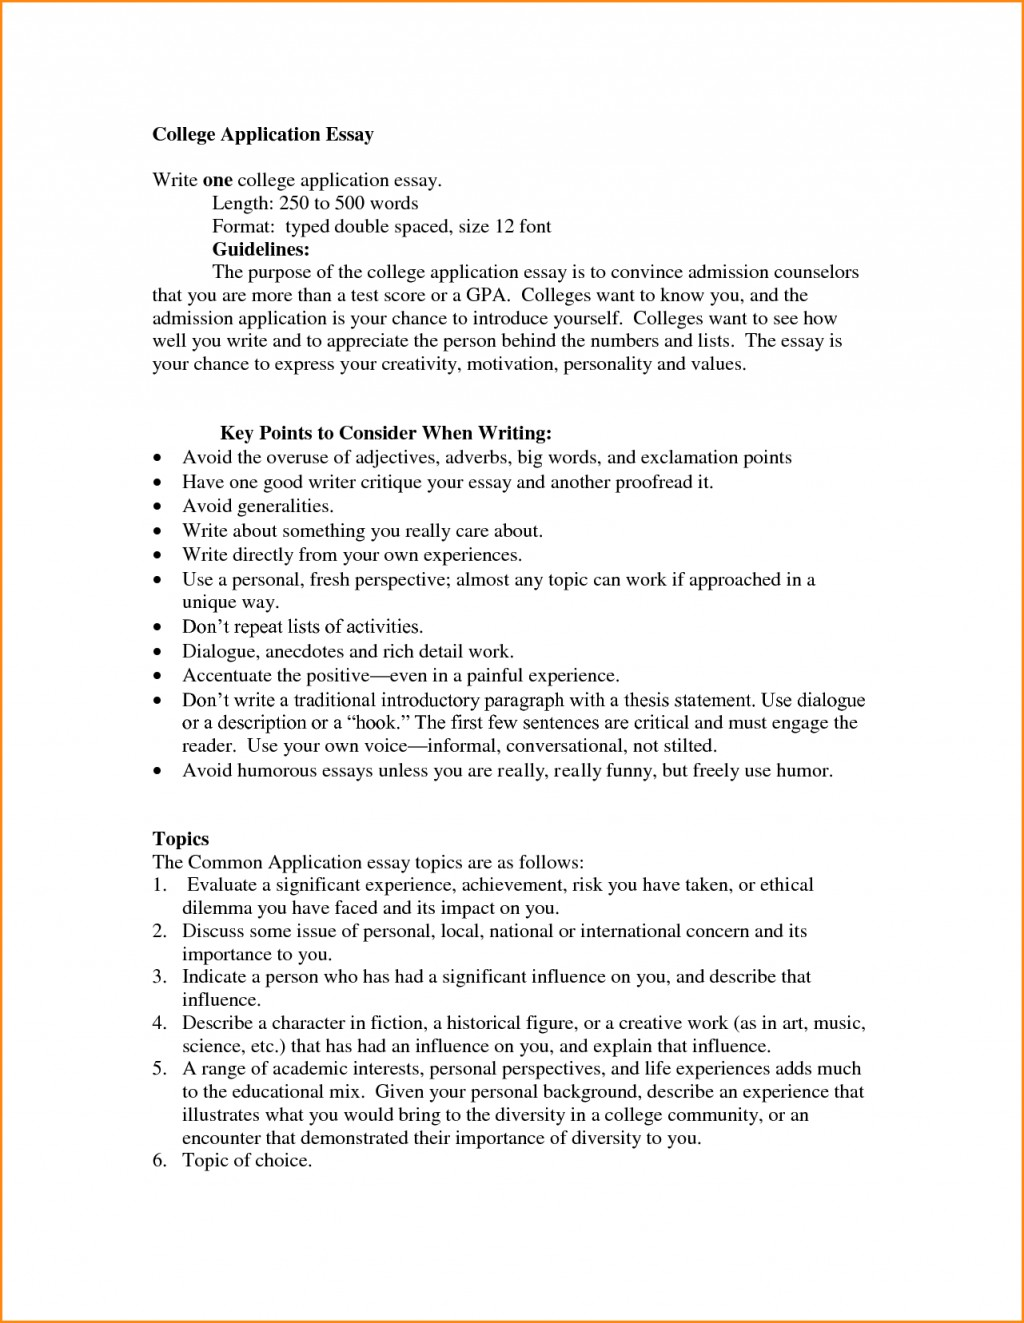 007 Essay Example Standard College Format Resume Cv Cover Letter L How To Awesome A Application Set Up My Your Large